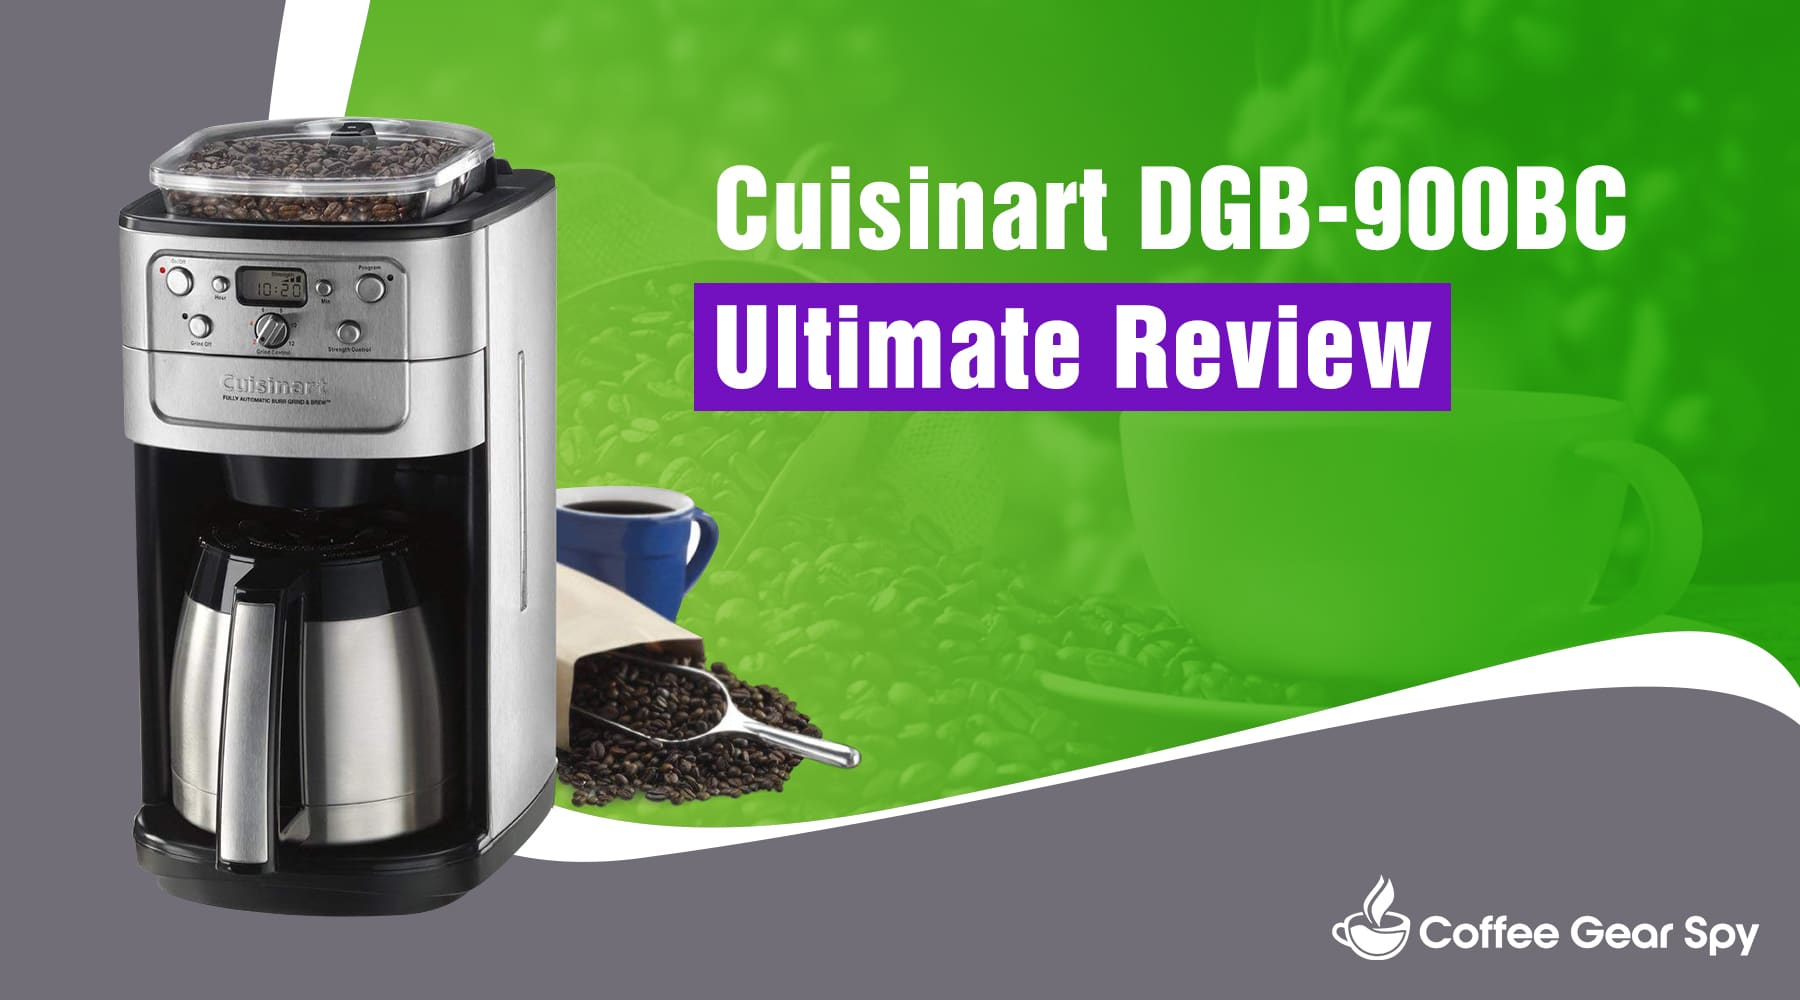 Cuisinart DGB-900BC Coffee Maker Review